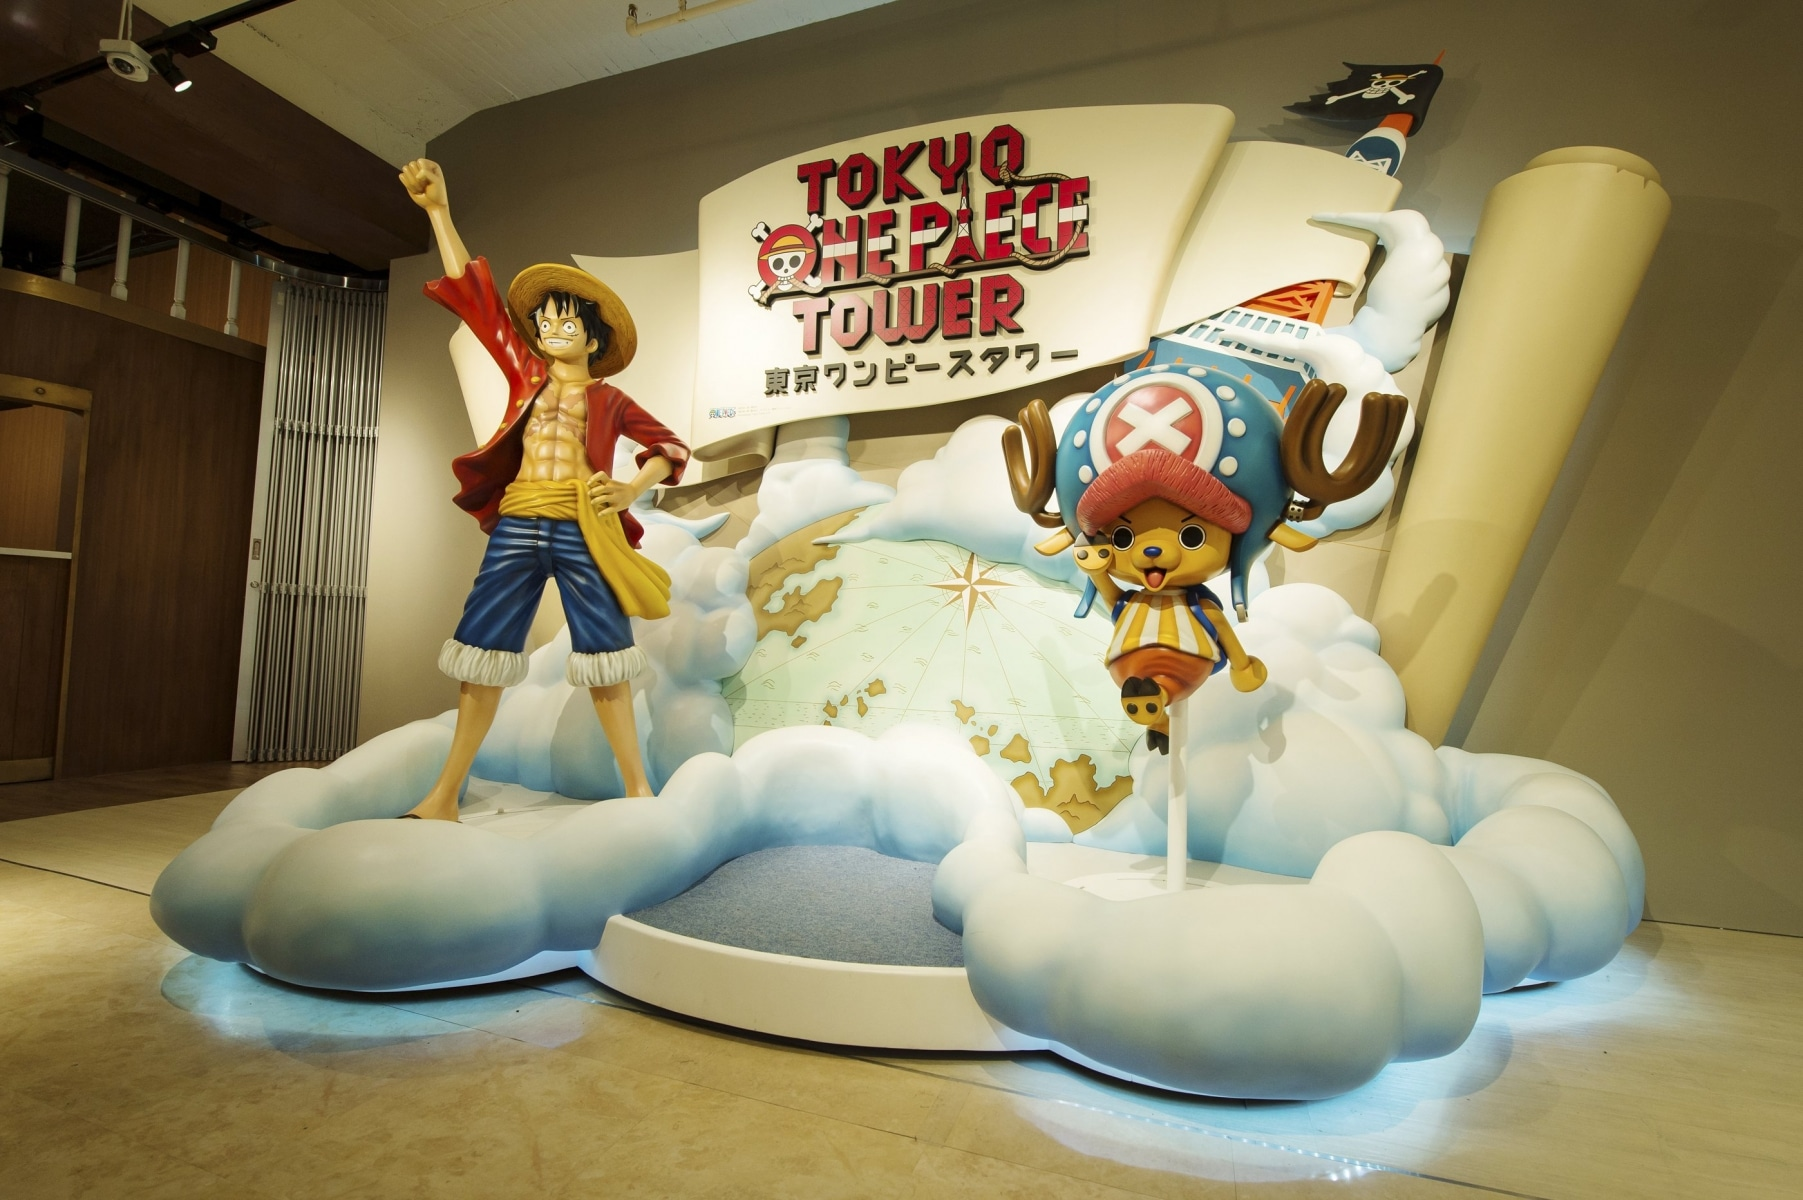 Tokyo Tower - Tokyo One Piece Tower (befreetour)